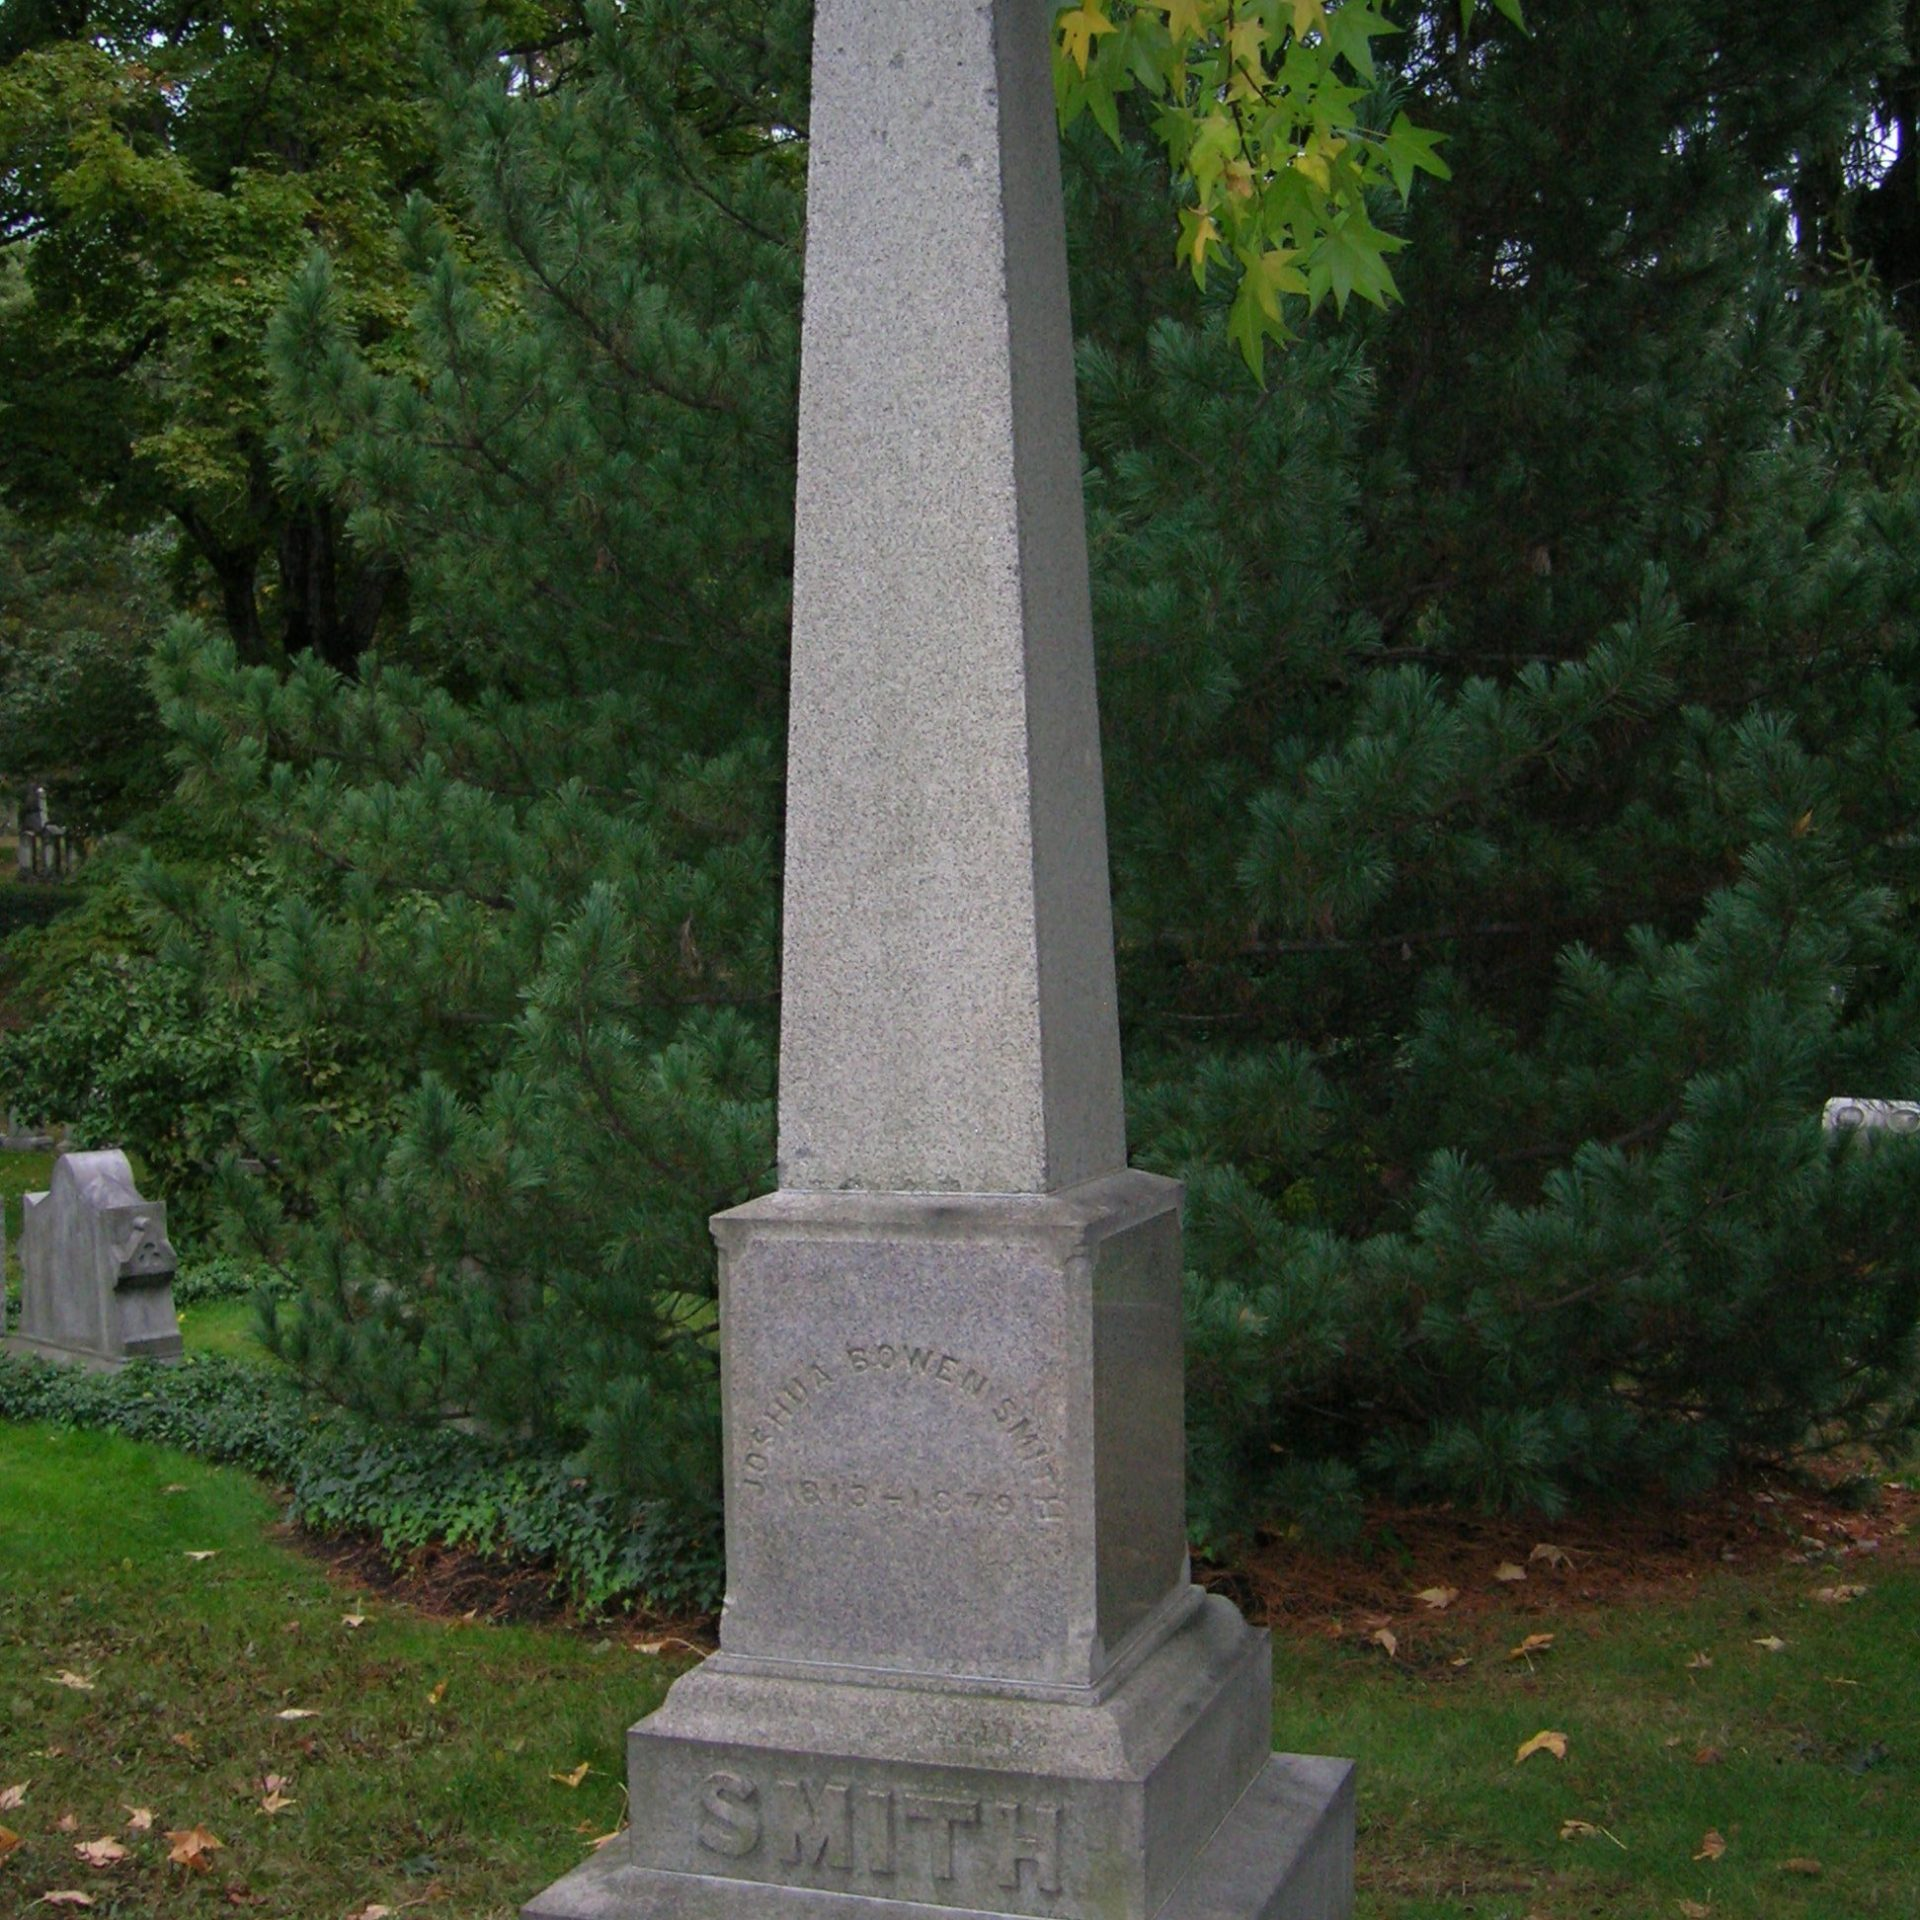 Simple obelisk made of granite. There is some staining, but inscription remains completely legible.